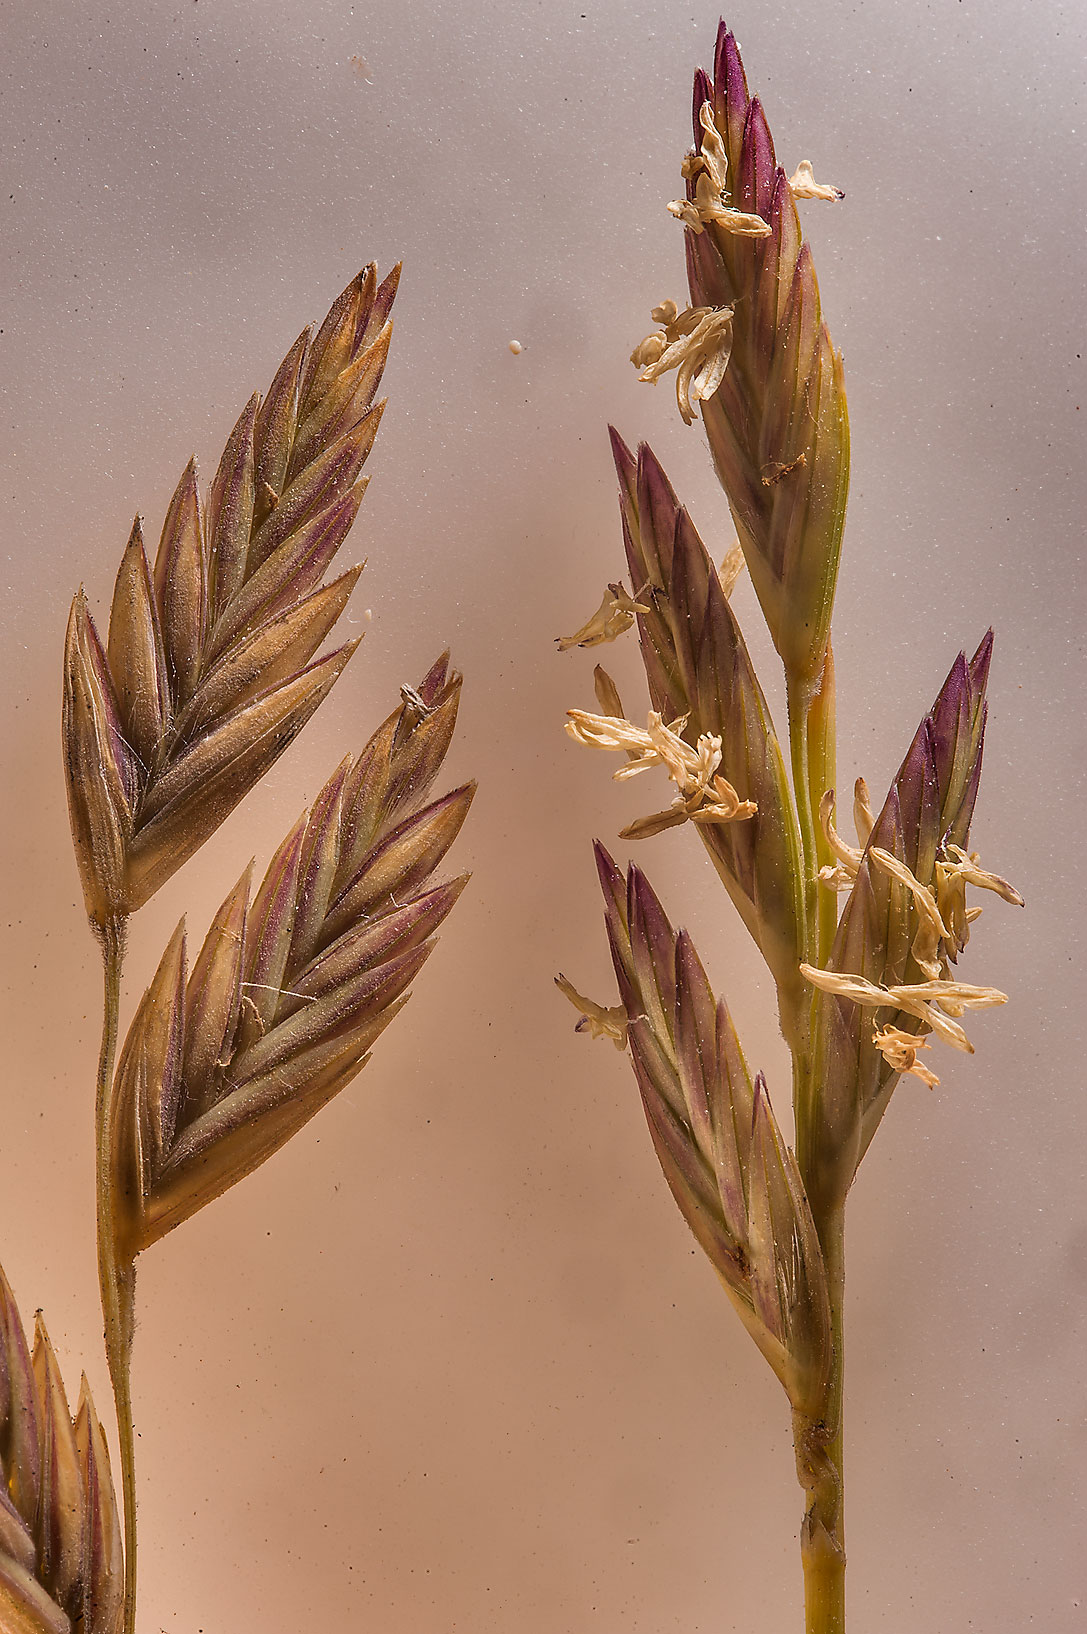 Spikelets of Halopyrum mucronatum grass in...on beach in Marouna. Northern Qatar